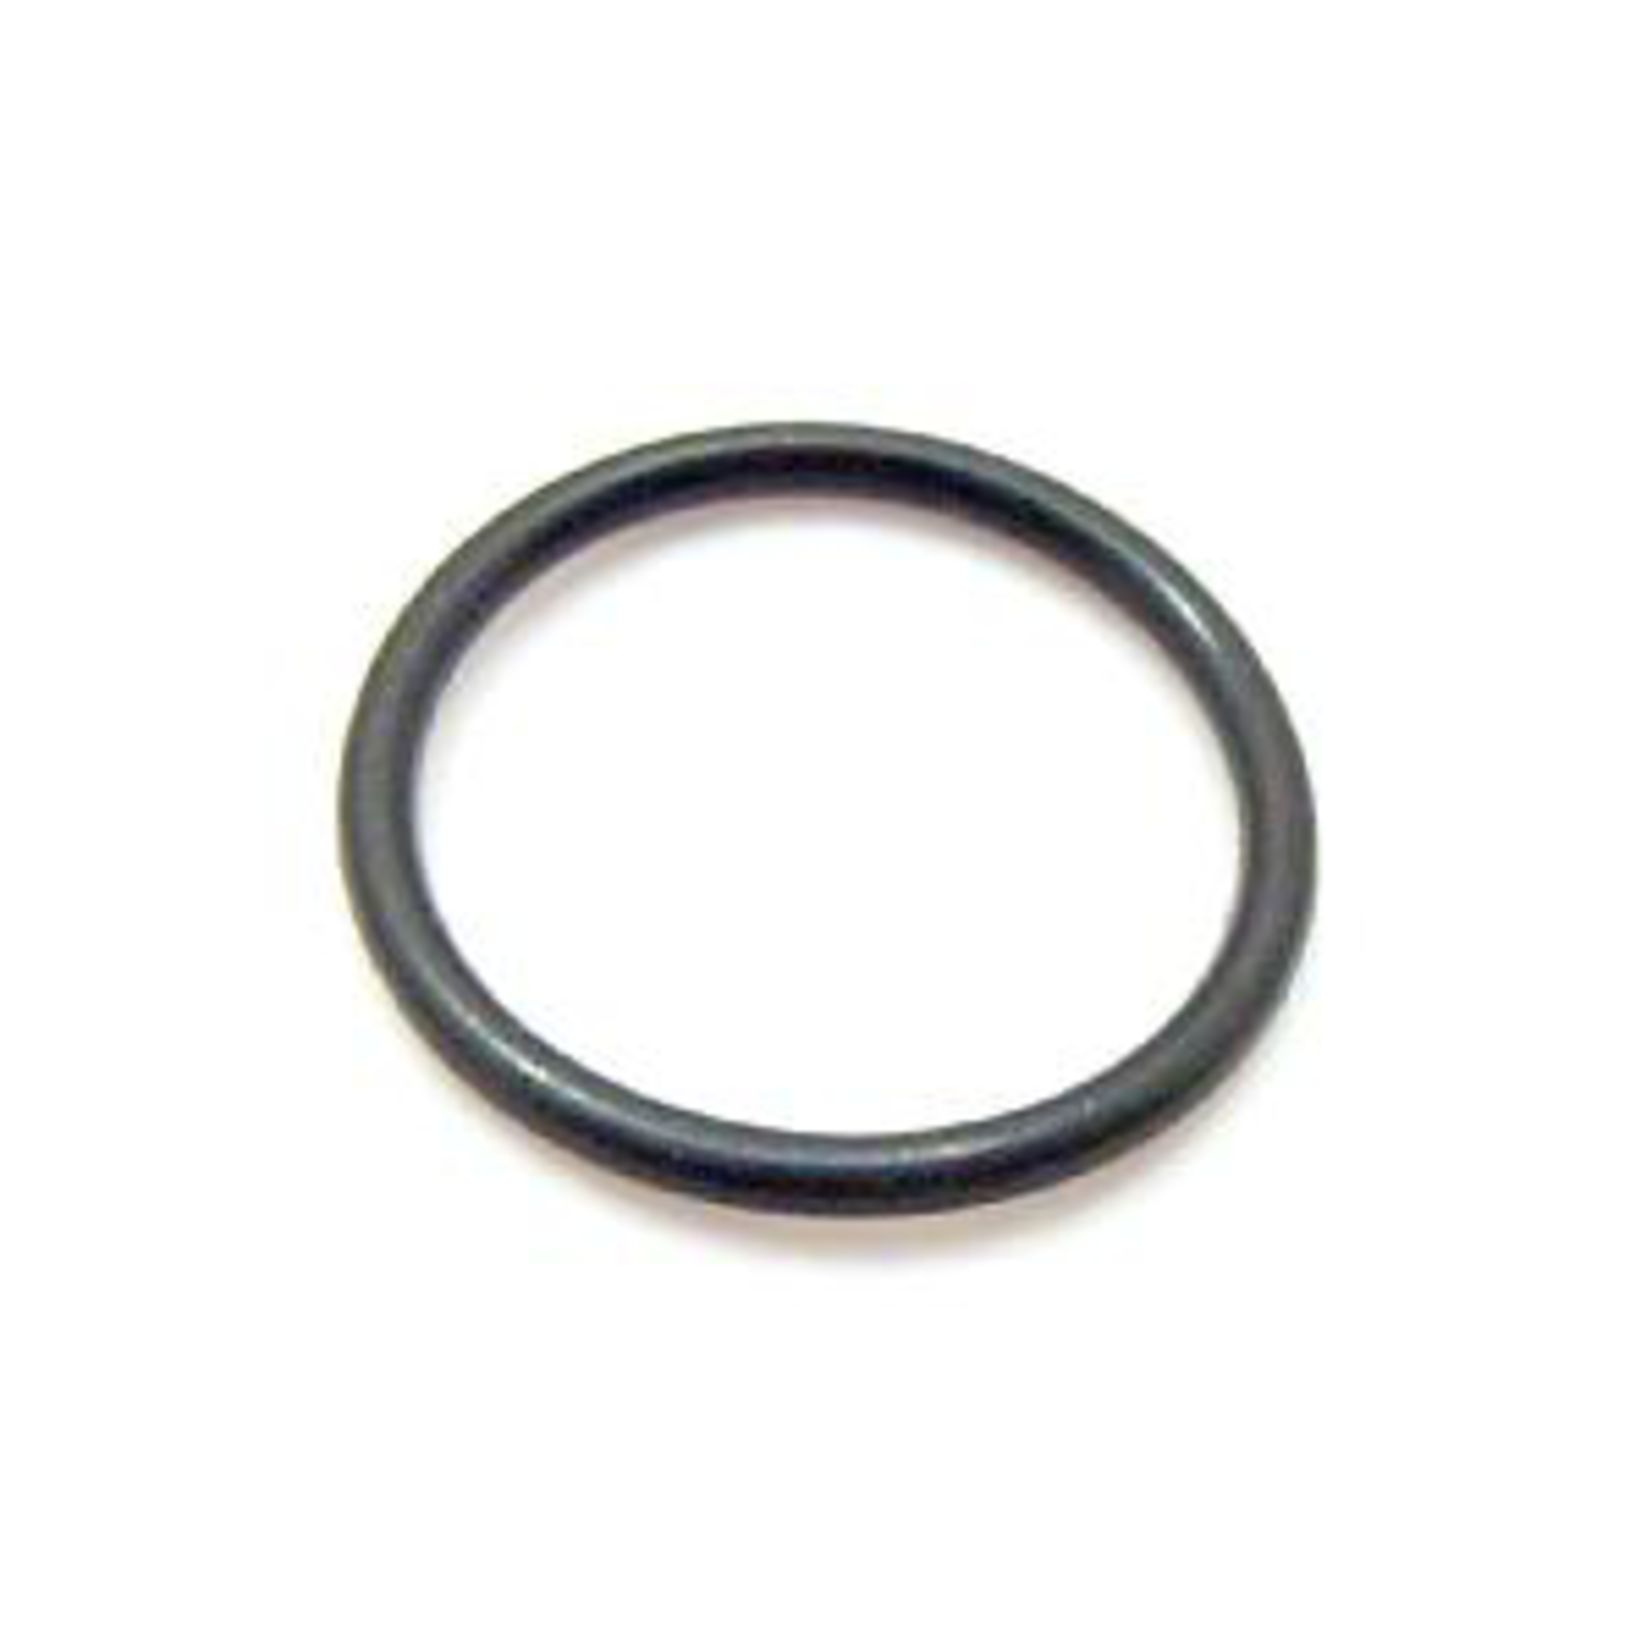 Parts Oil Seal for Drain Plug 50-500